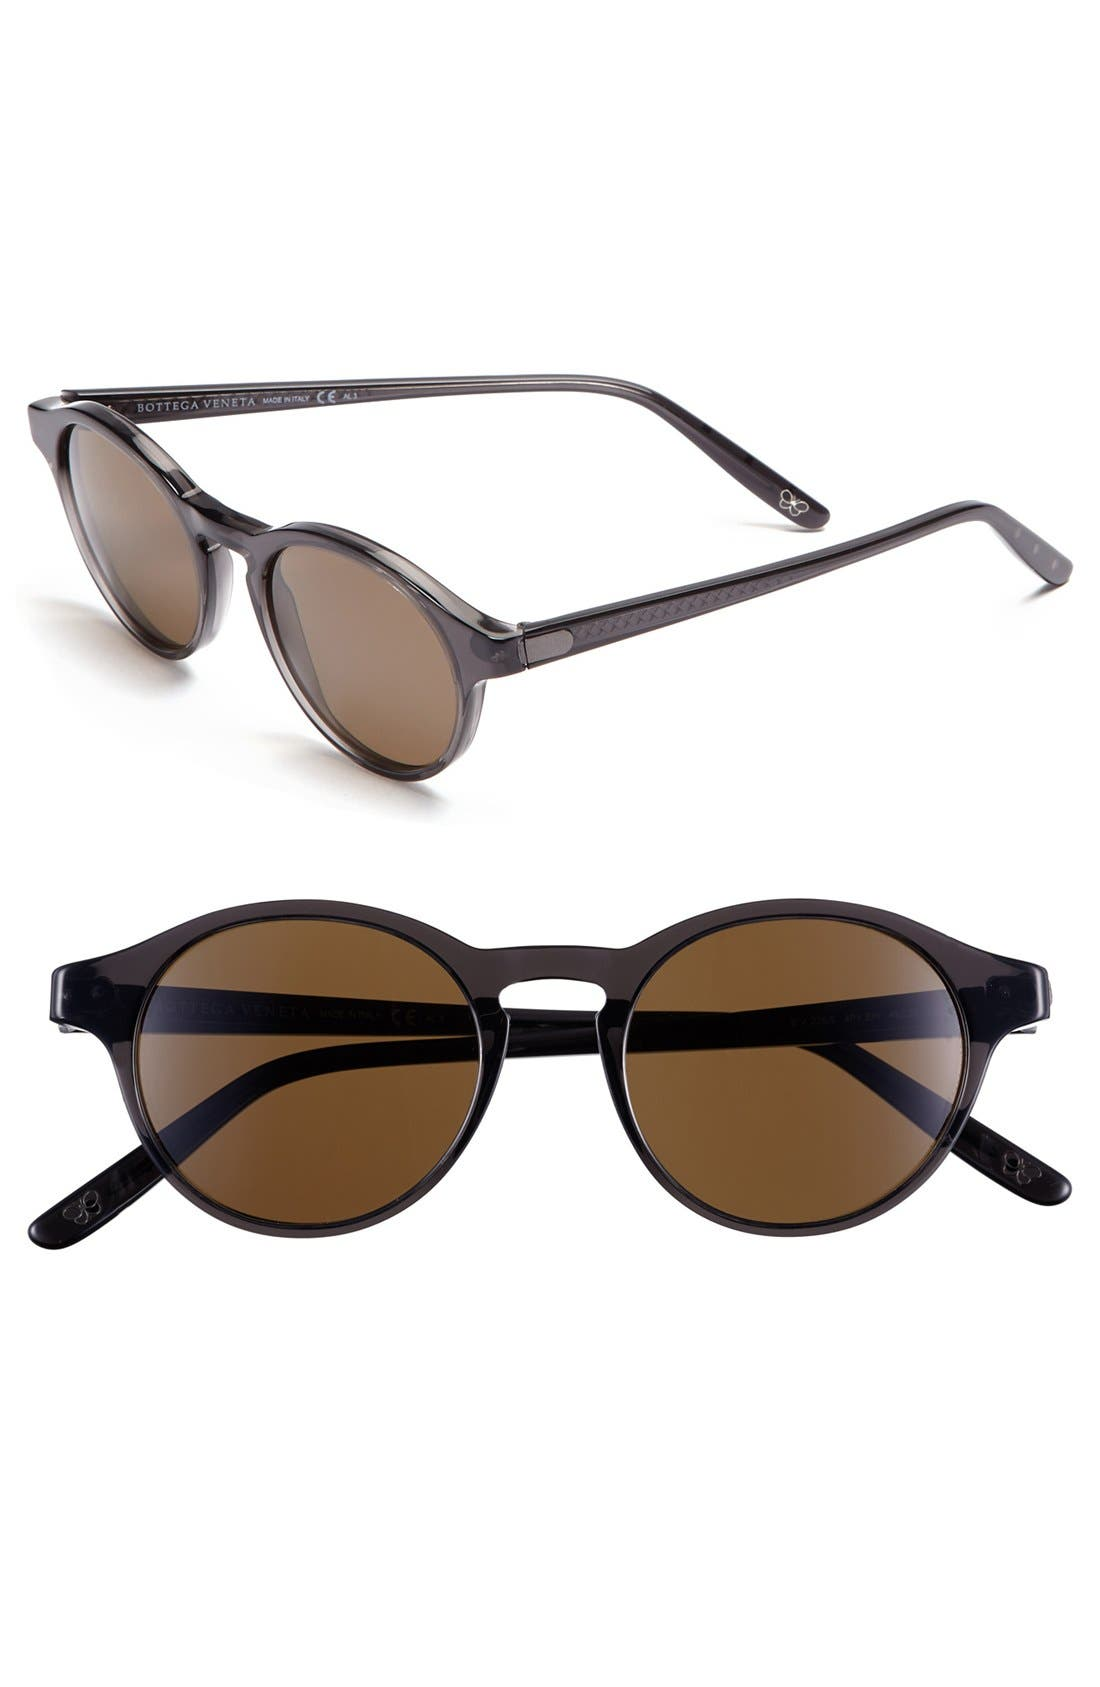 Main Image - Bottega Veneta 49mm Retro Sunglasses